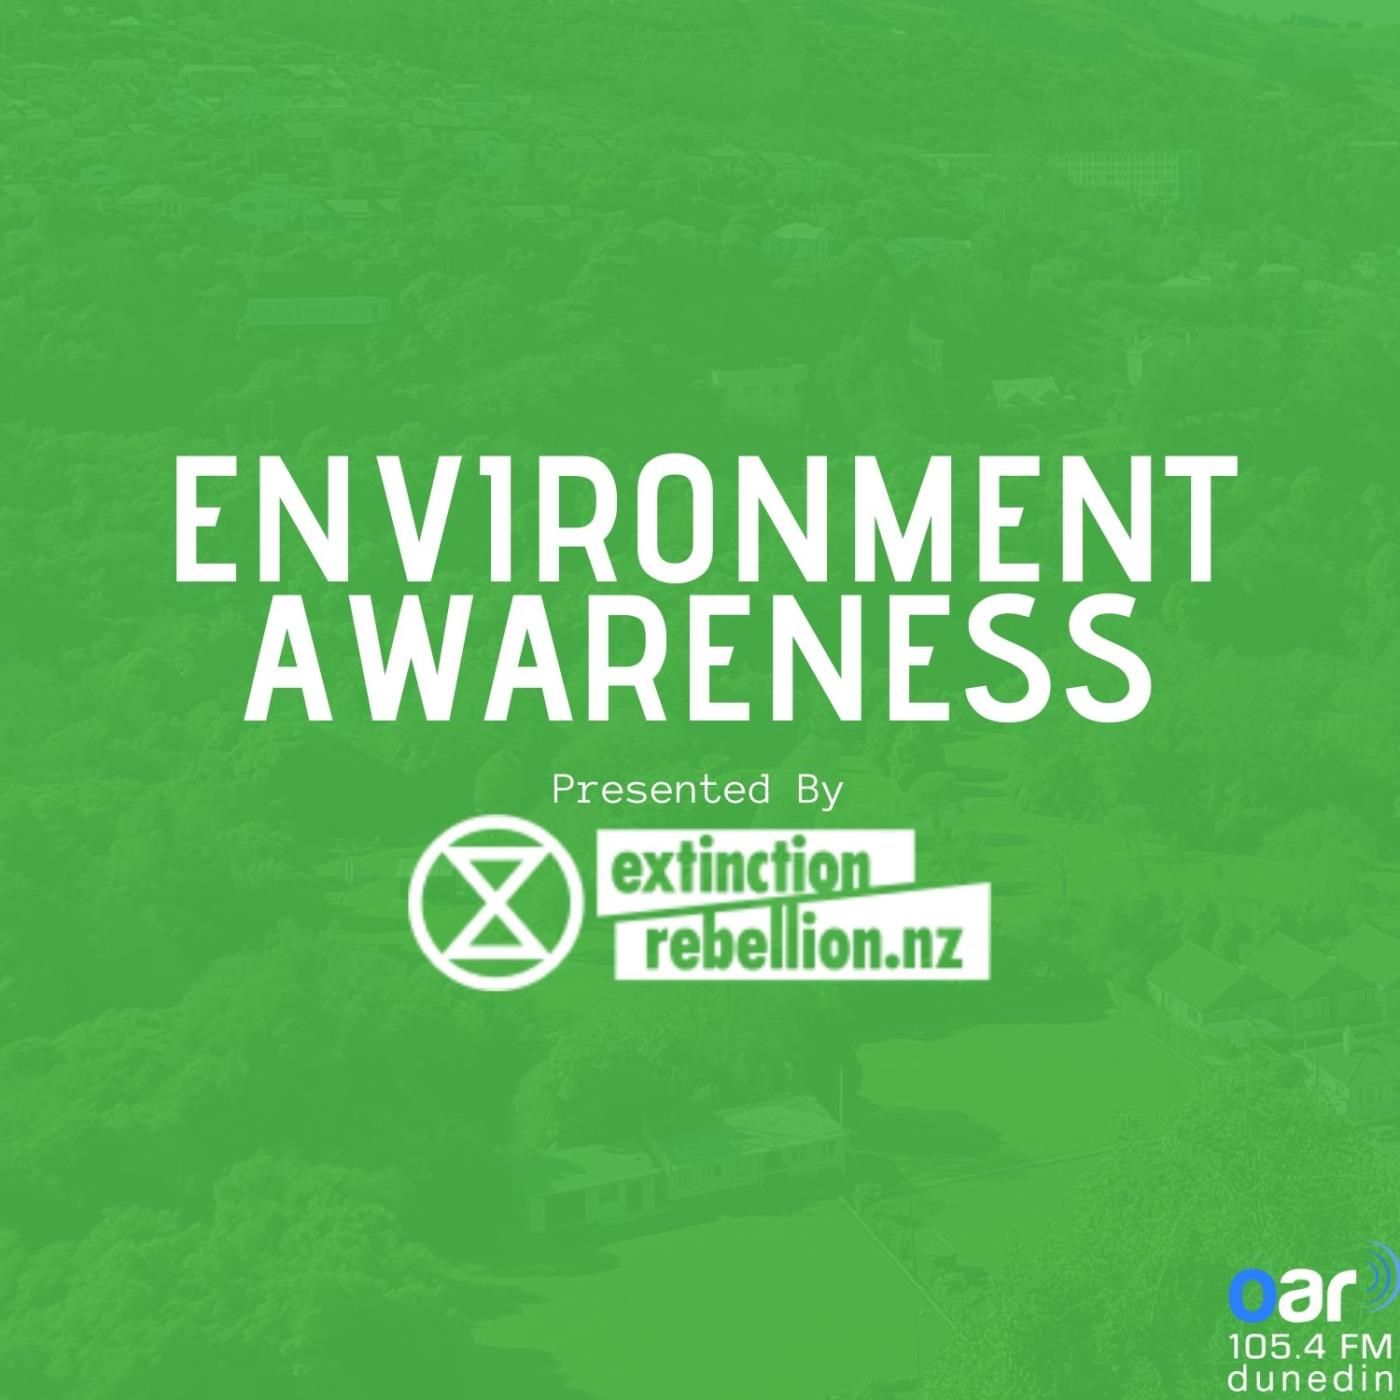 Environment Awareness - 16-07-2020 - Show 41 - Music and the Protest Movement - Dane